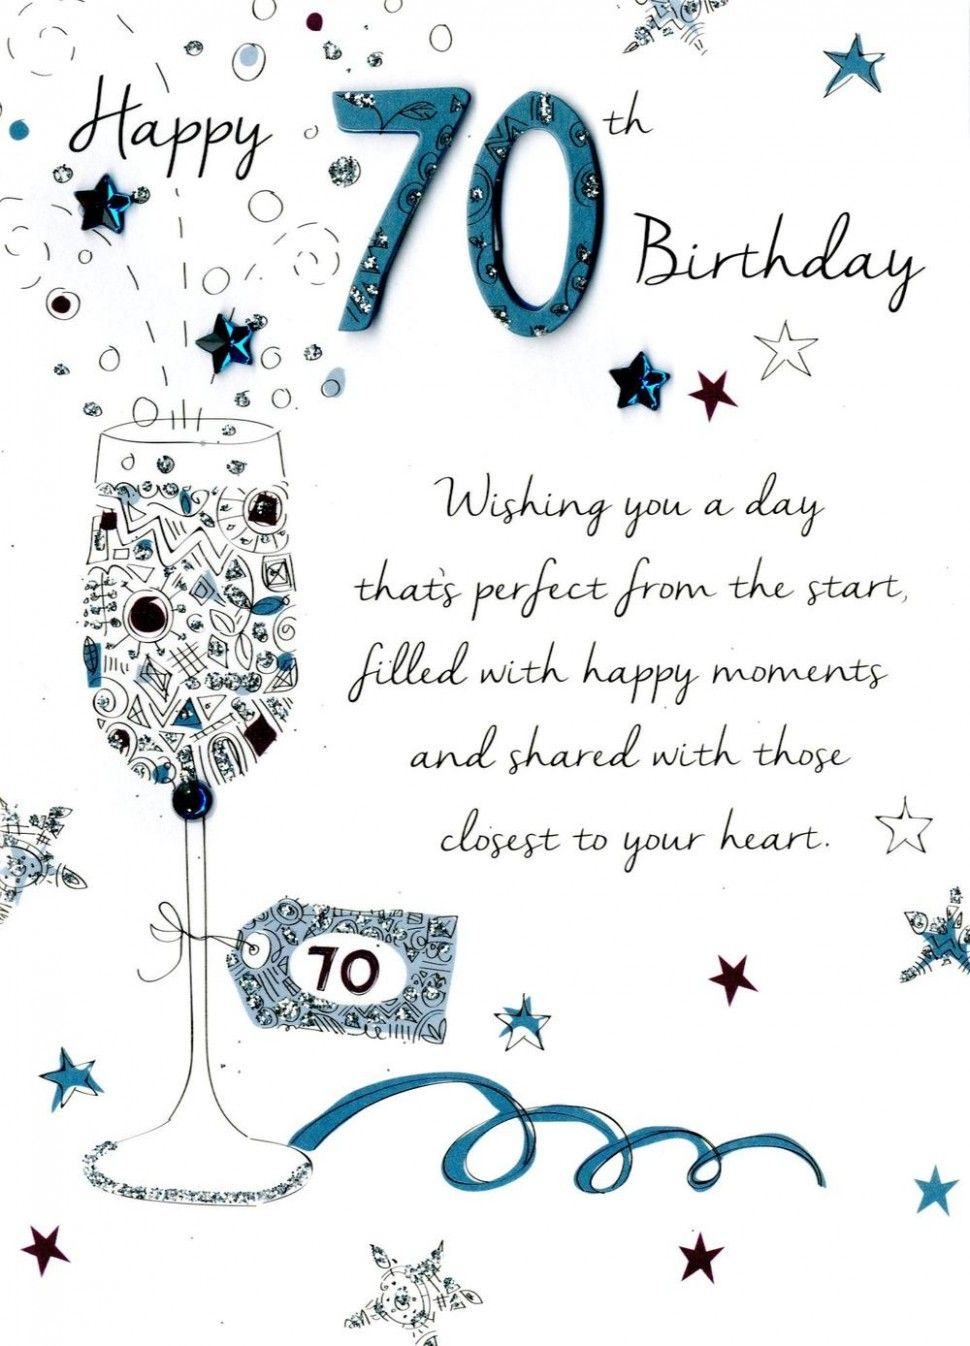 12 New Ideas 70th Birthday Wishes For A Special Friend In 2021 70th Birthday Card 70th Birthday Birthday Greeting Cards